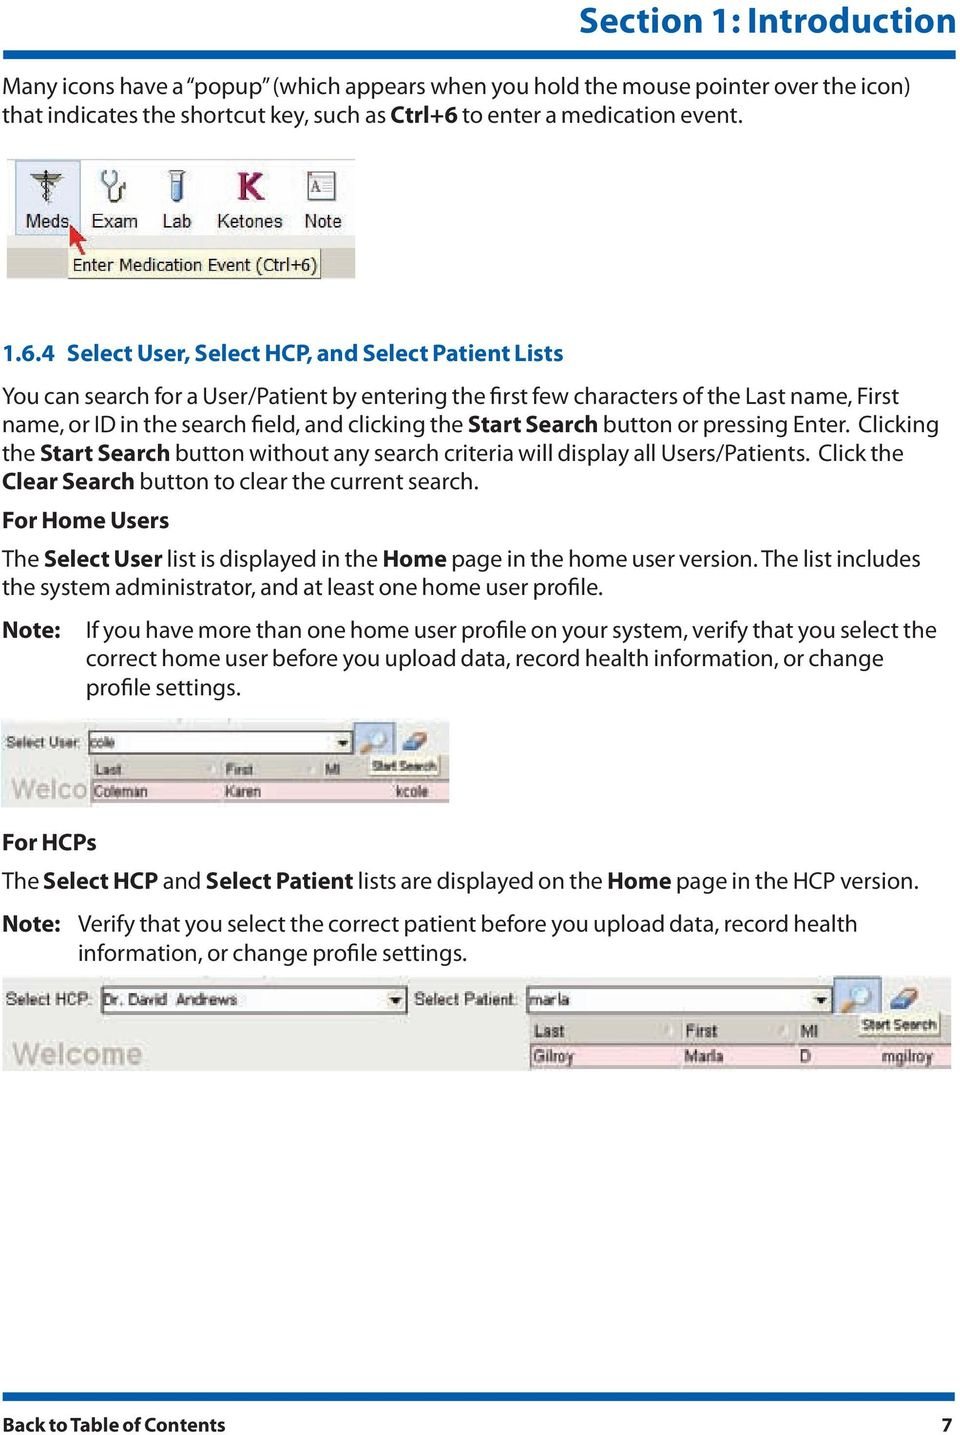 4 Select User, Select HCP, and Select Patient Lists You can search for a User/Patient by entering the first few characters of the Last name, First name, or ID in the search field, and clicking the